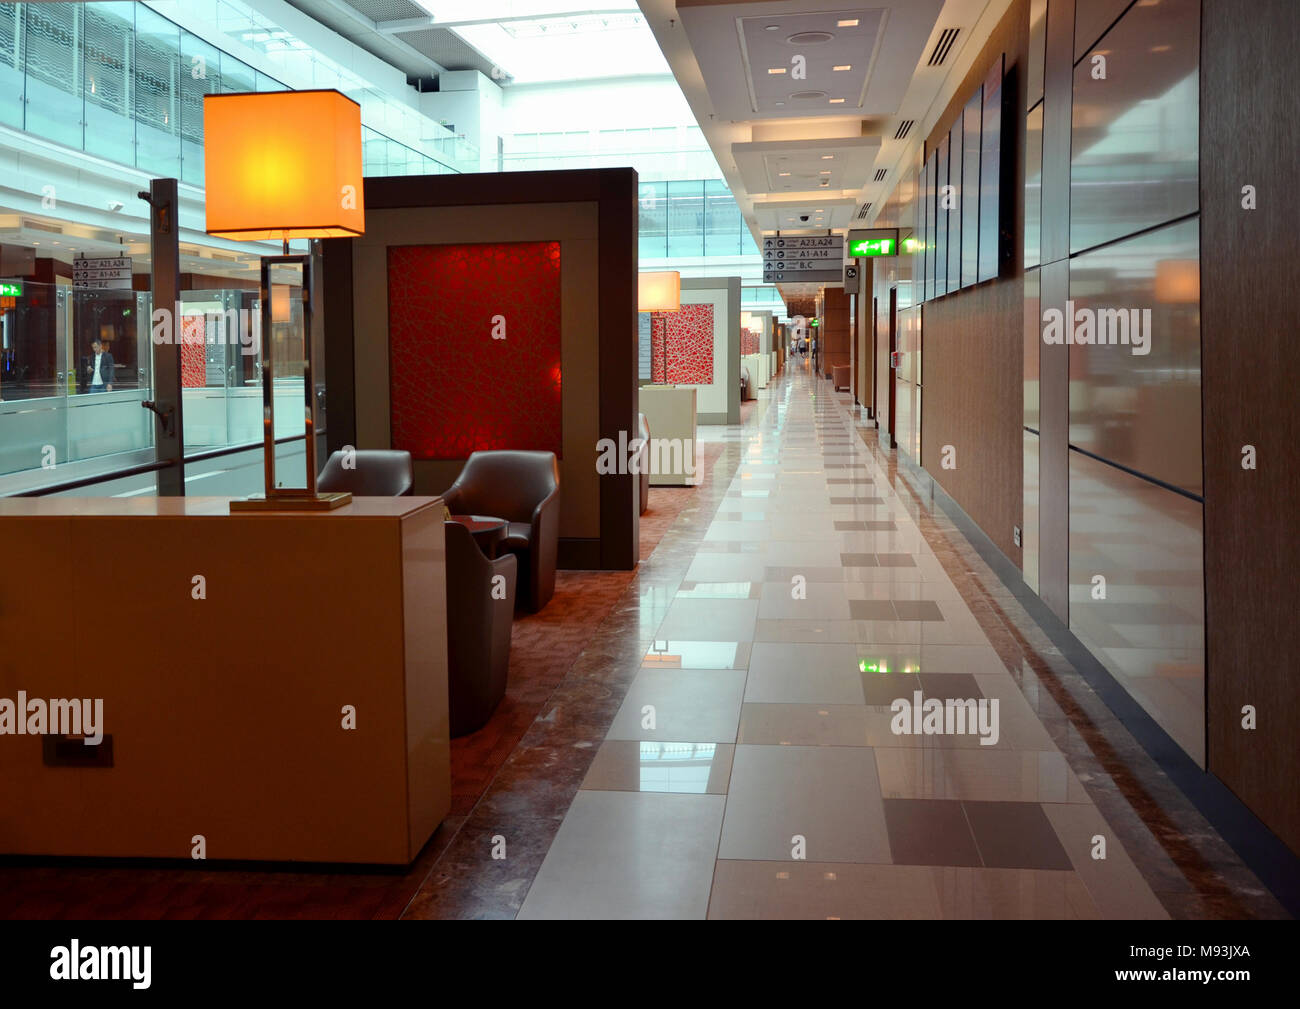 Dubai Airport, UAE - September 22, 2017: Luxury seating areas in Emirates Business Class Lounge - Stock Image